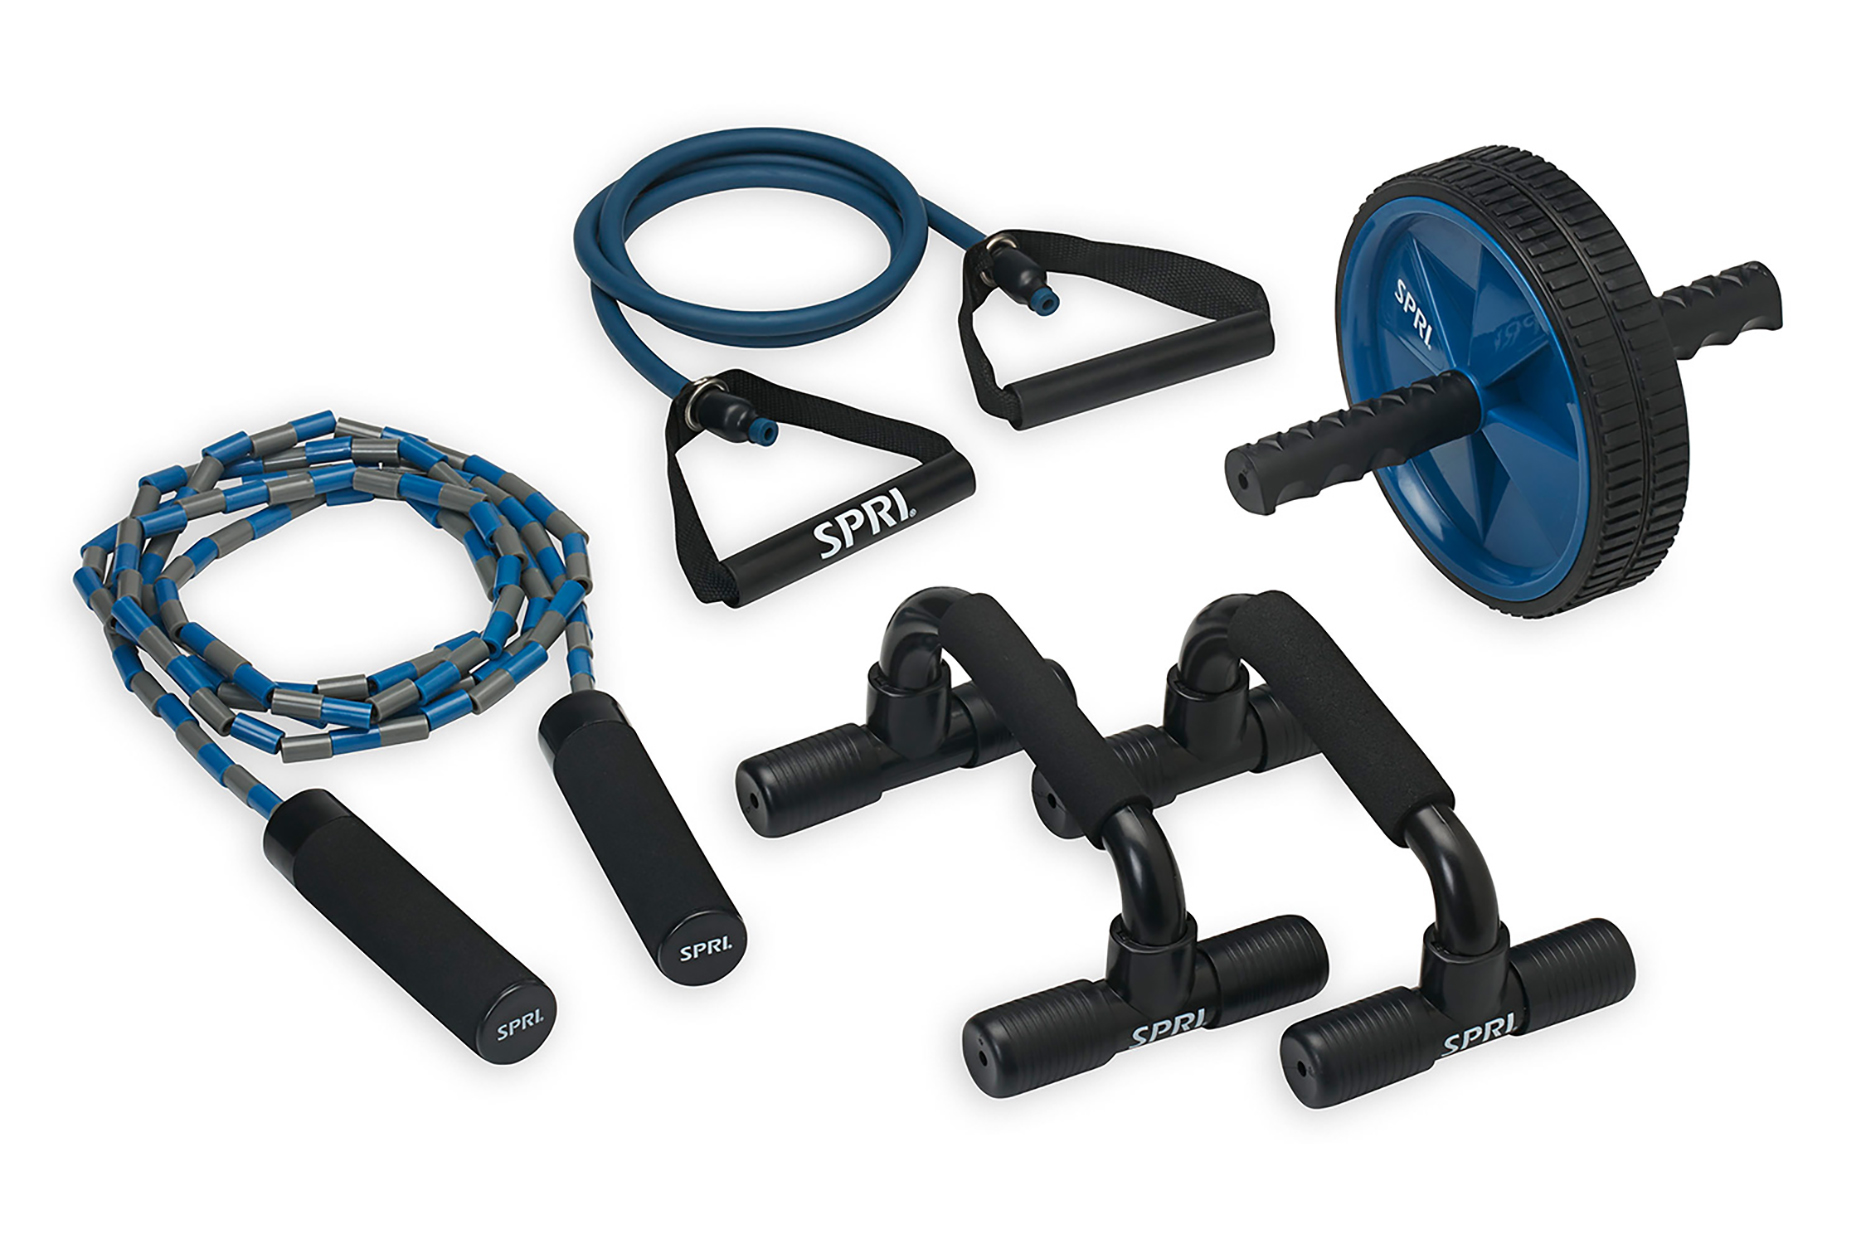 You Can Create a Home Gym for Just $20 with This Workout Kit